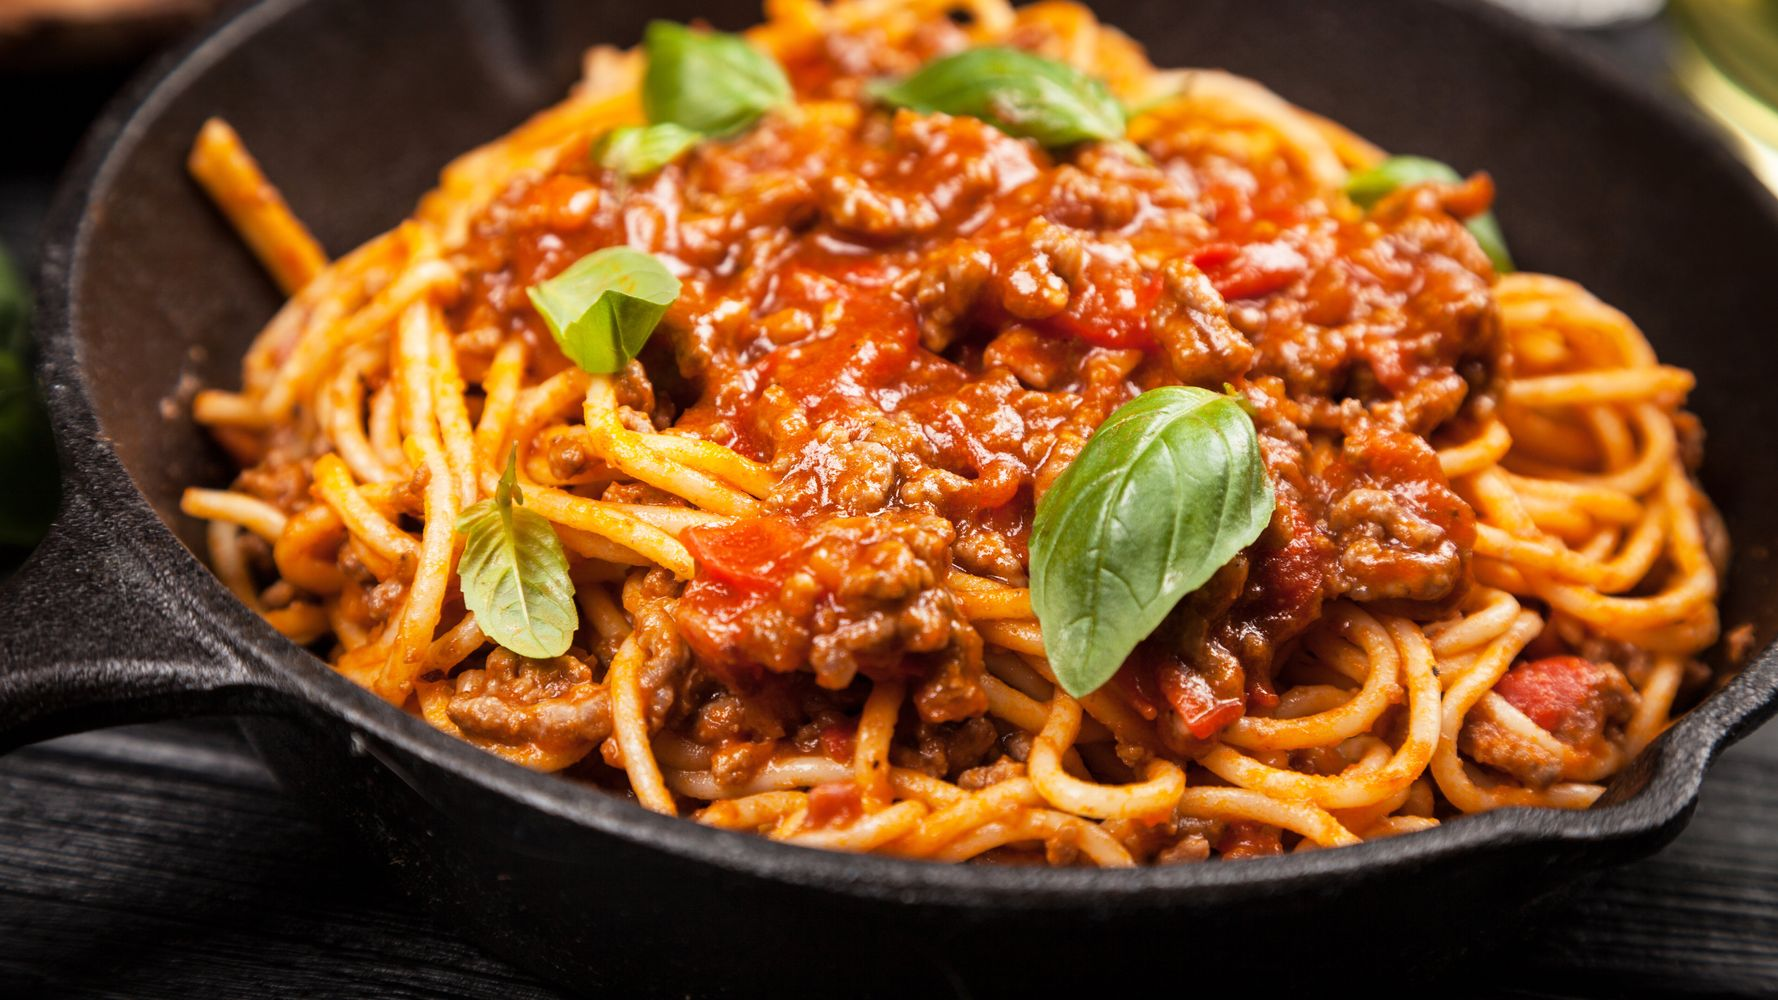 Here's How You Actually Make Spaghetti Bolognese Like An Italian